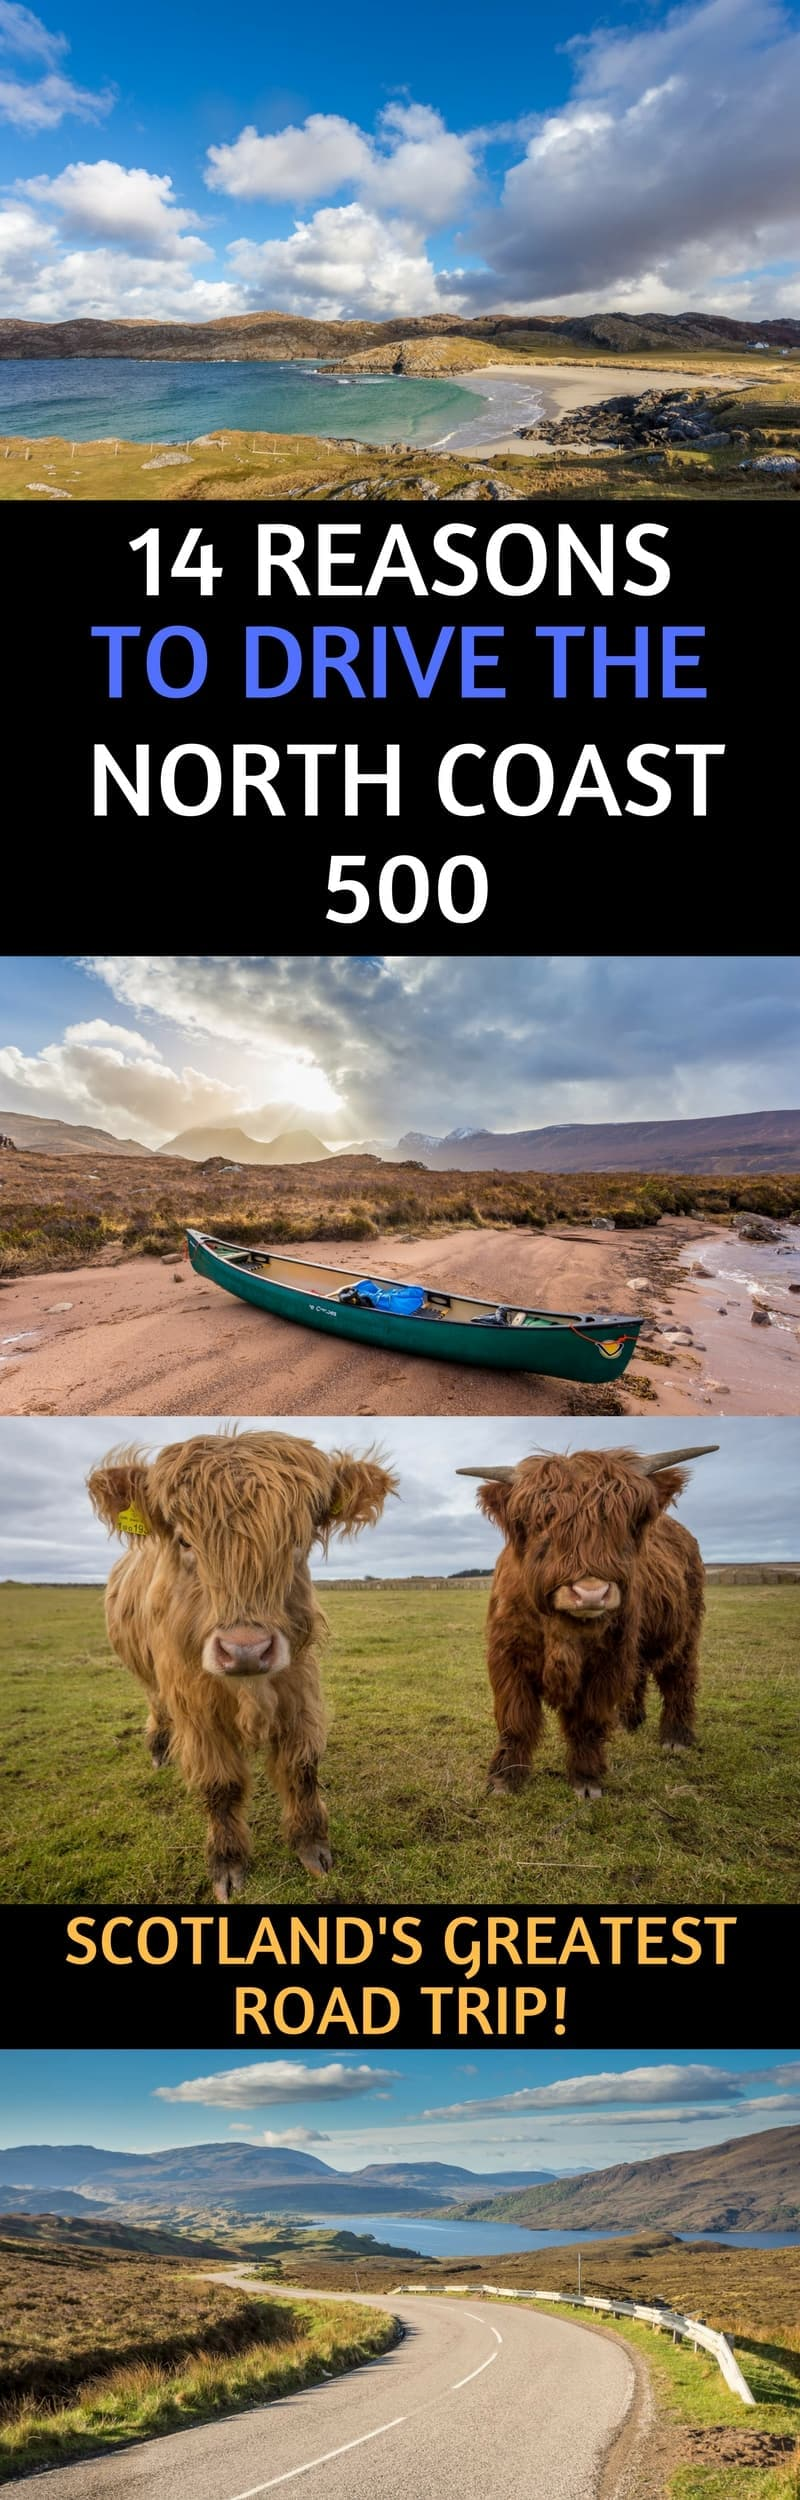 The North Coast 500 is Scotland's best road trip! After driving it several times ourselves, we present 14 of the top reasons to drive this route which include amazing wildlife, hiking, golfing, food, castles, whisky, and local hospitality! We also provide lots of resources & advice for planning your own North Coast 500 road trip! #NorthCoast500 #NC500 #Scotland #roadtrip #ScottishHighlands